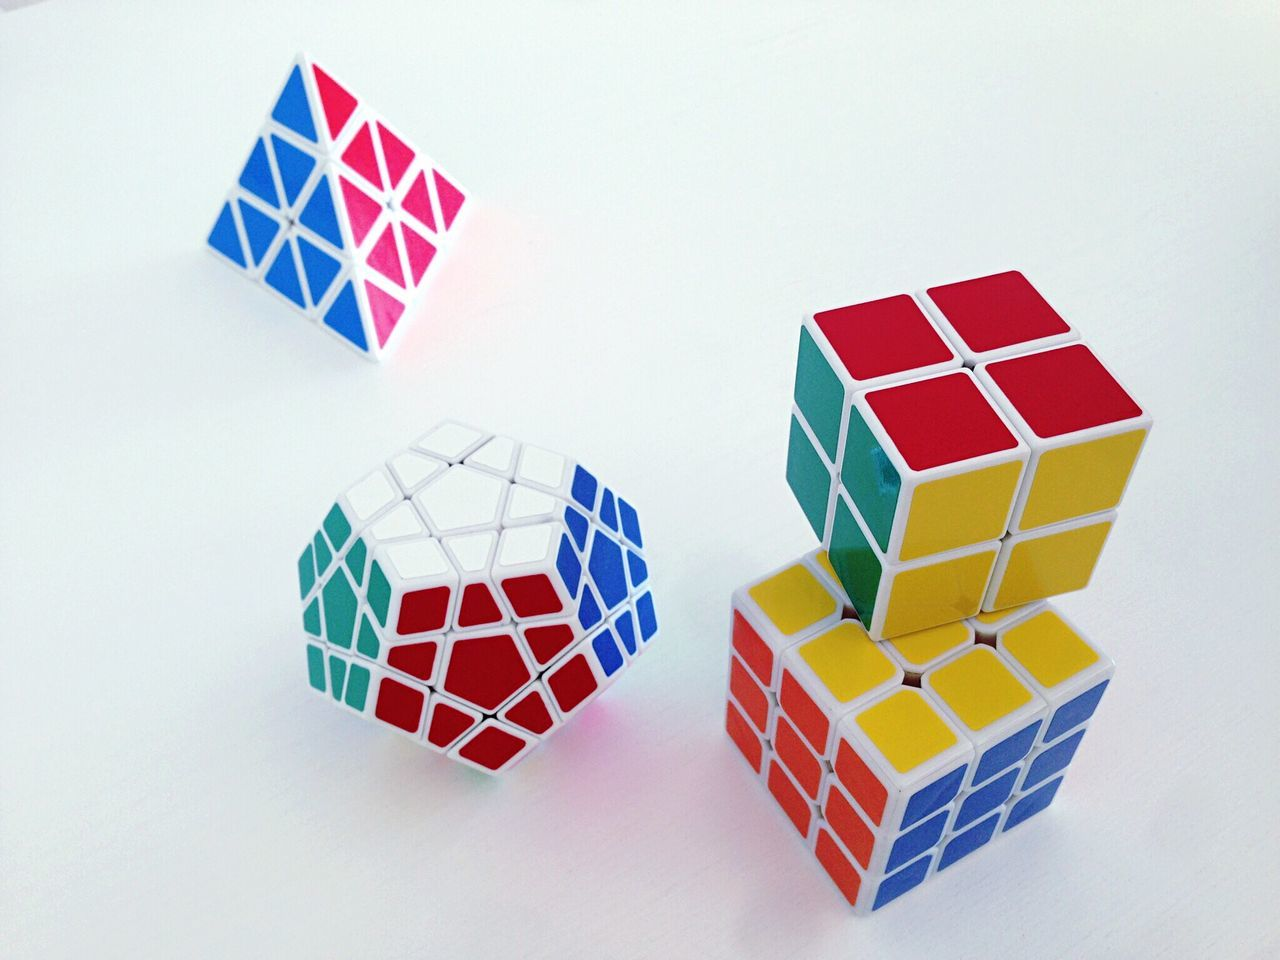 multi colored, shape, geometric shape, white background, still life, puzzle, toy, no people, indoors, balance, toy block, childhood, studio shot, pattern, large group of objects, leisure games, red, close-up, gambling, day